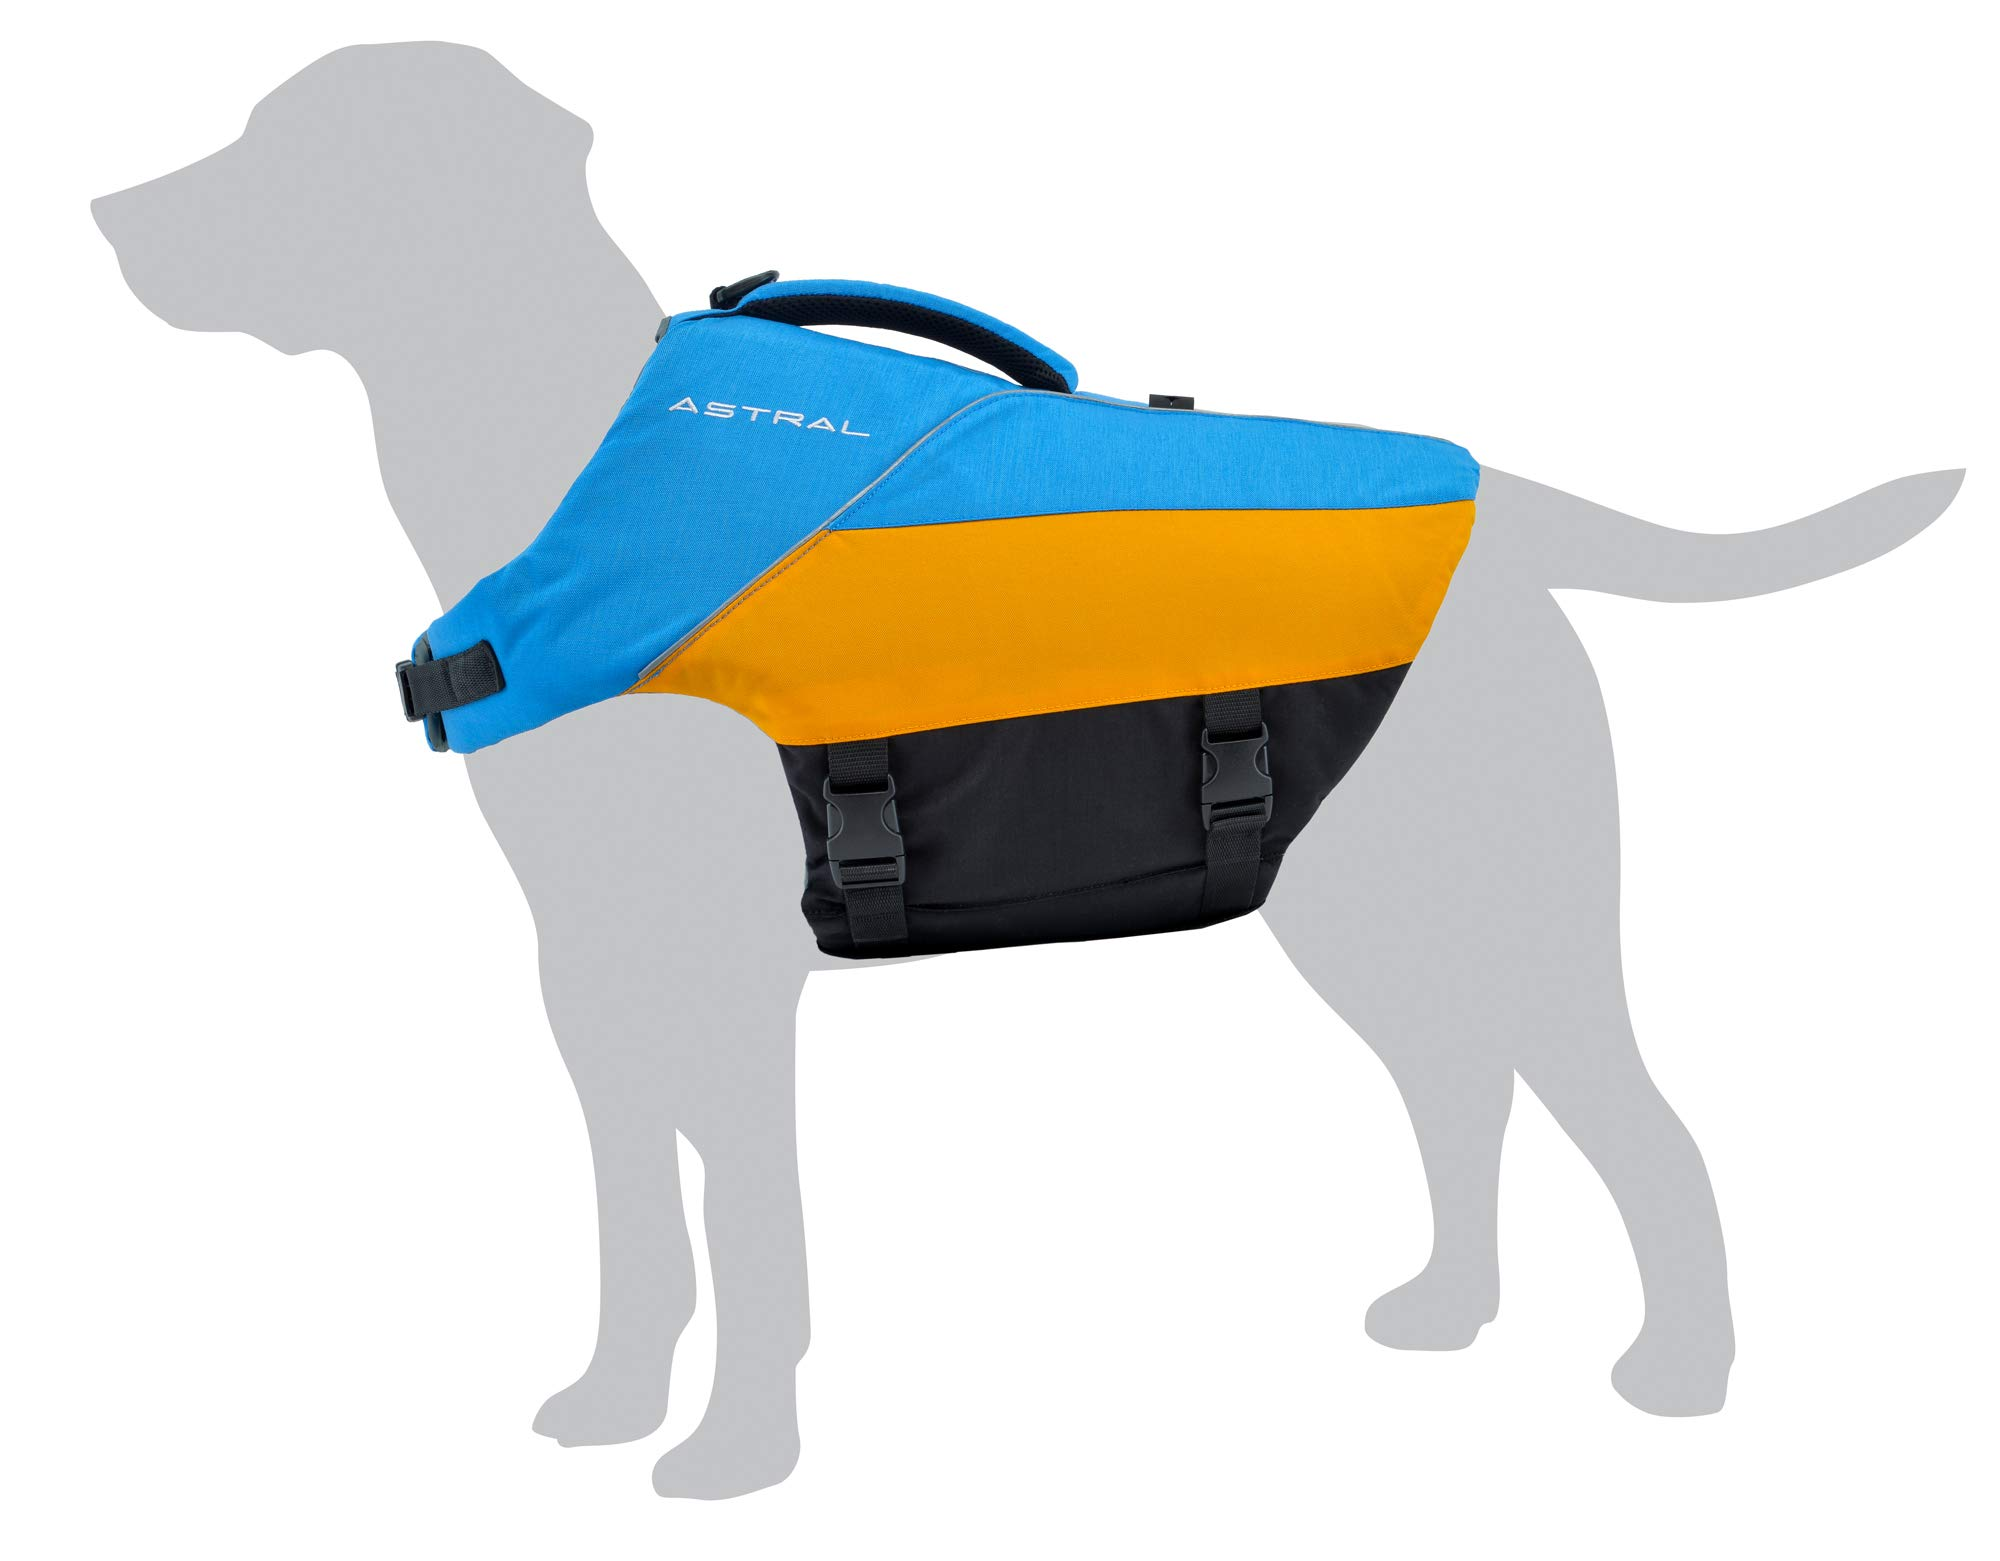 Astral BirdDog Dog Life Jacket PFD for Swimming and Water Play, Ol' Blue, Small by Astral